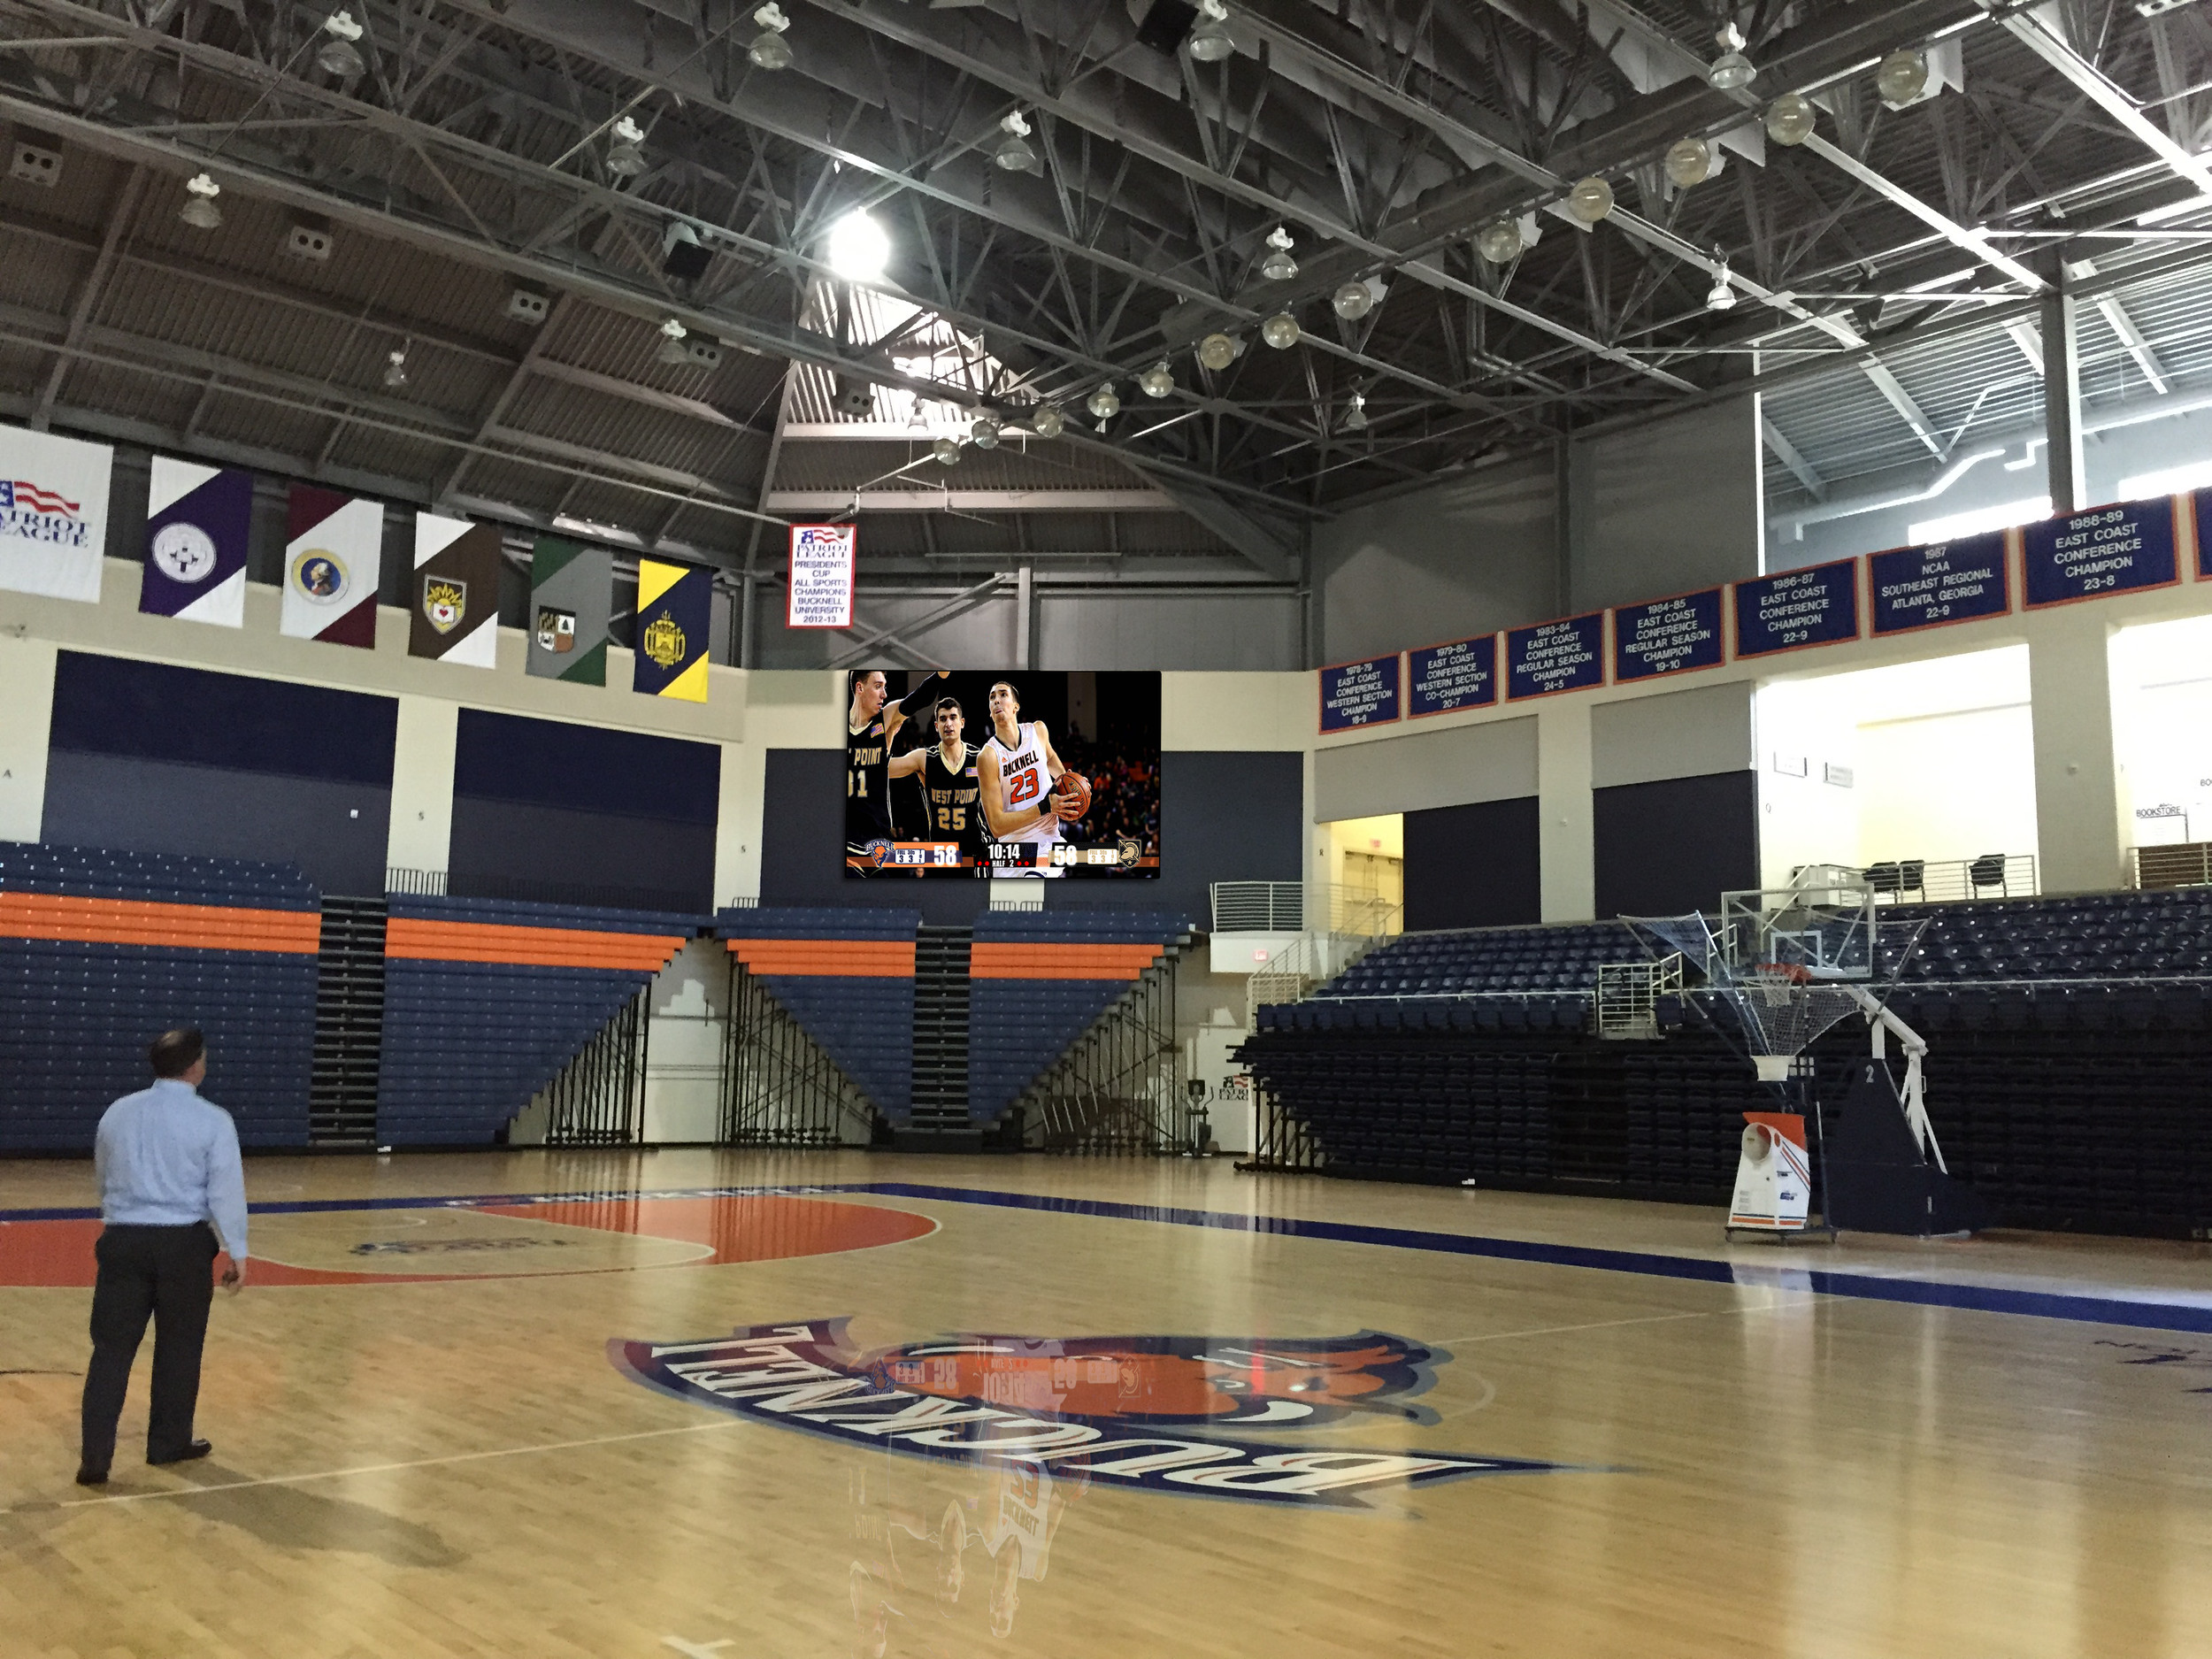 Bucknell University partners with ANC to upgrade Sojka Pavilion